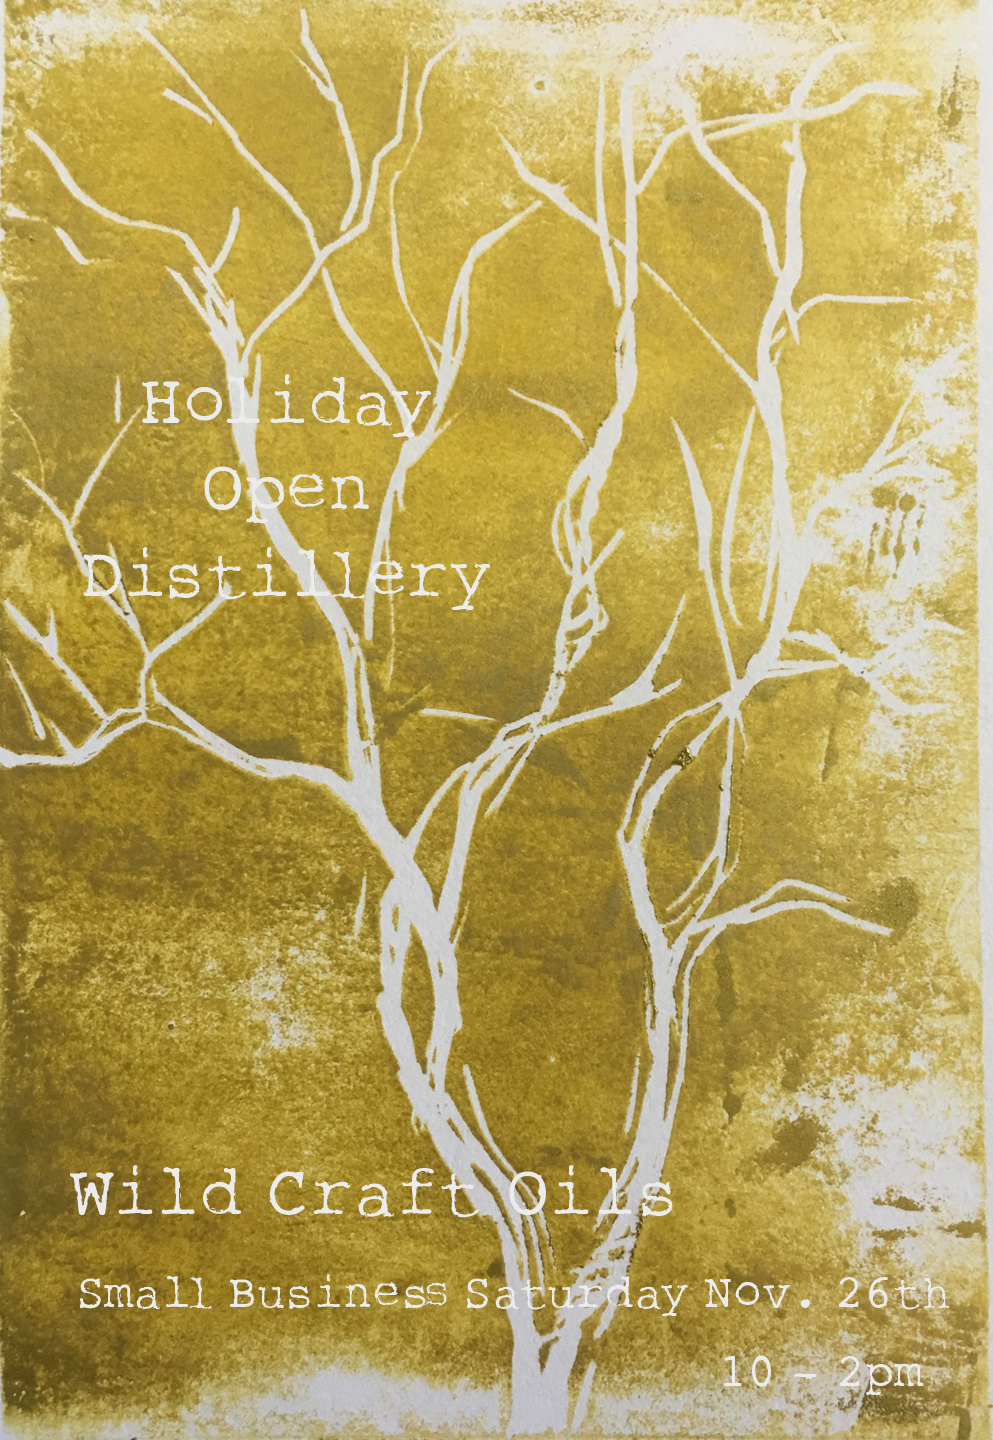 Holiday Open Distillery - Wild Craft Oils - Encinitas